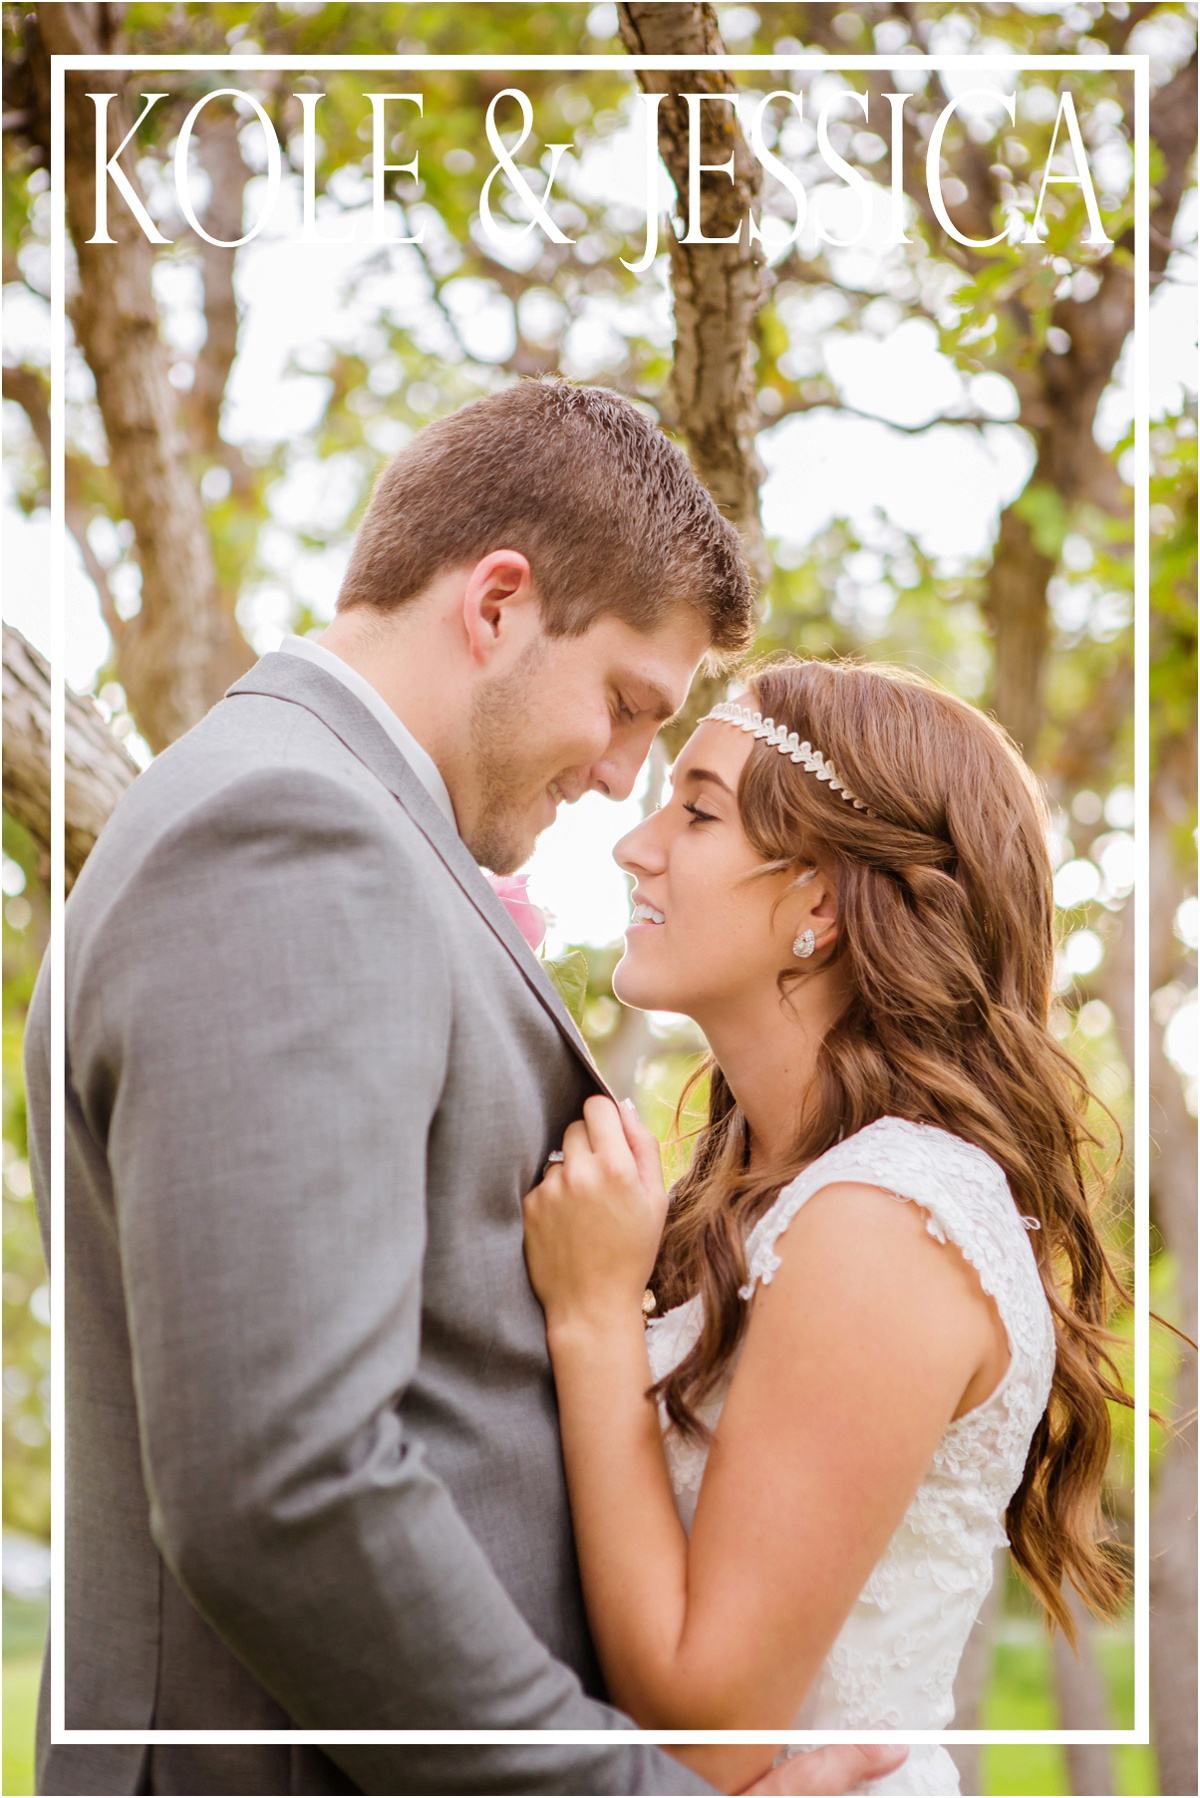 Terra Cooper Photography Weddings Brides 2015_5372.jpg